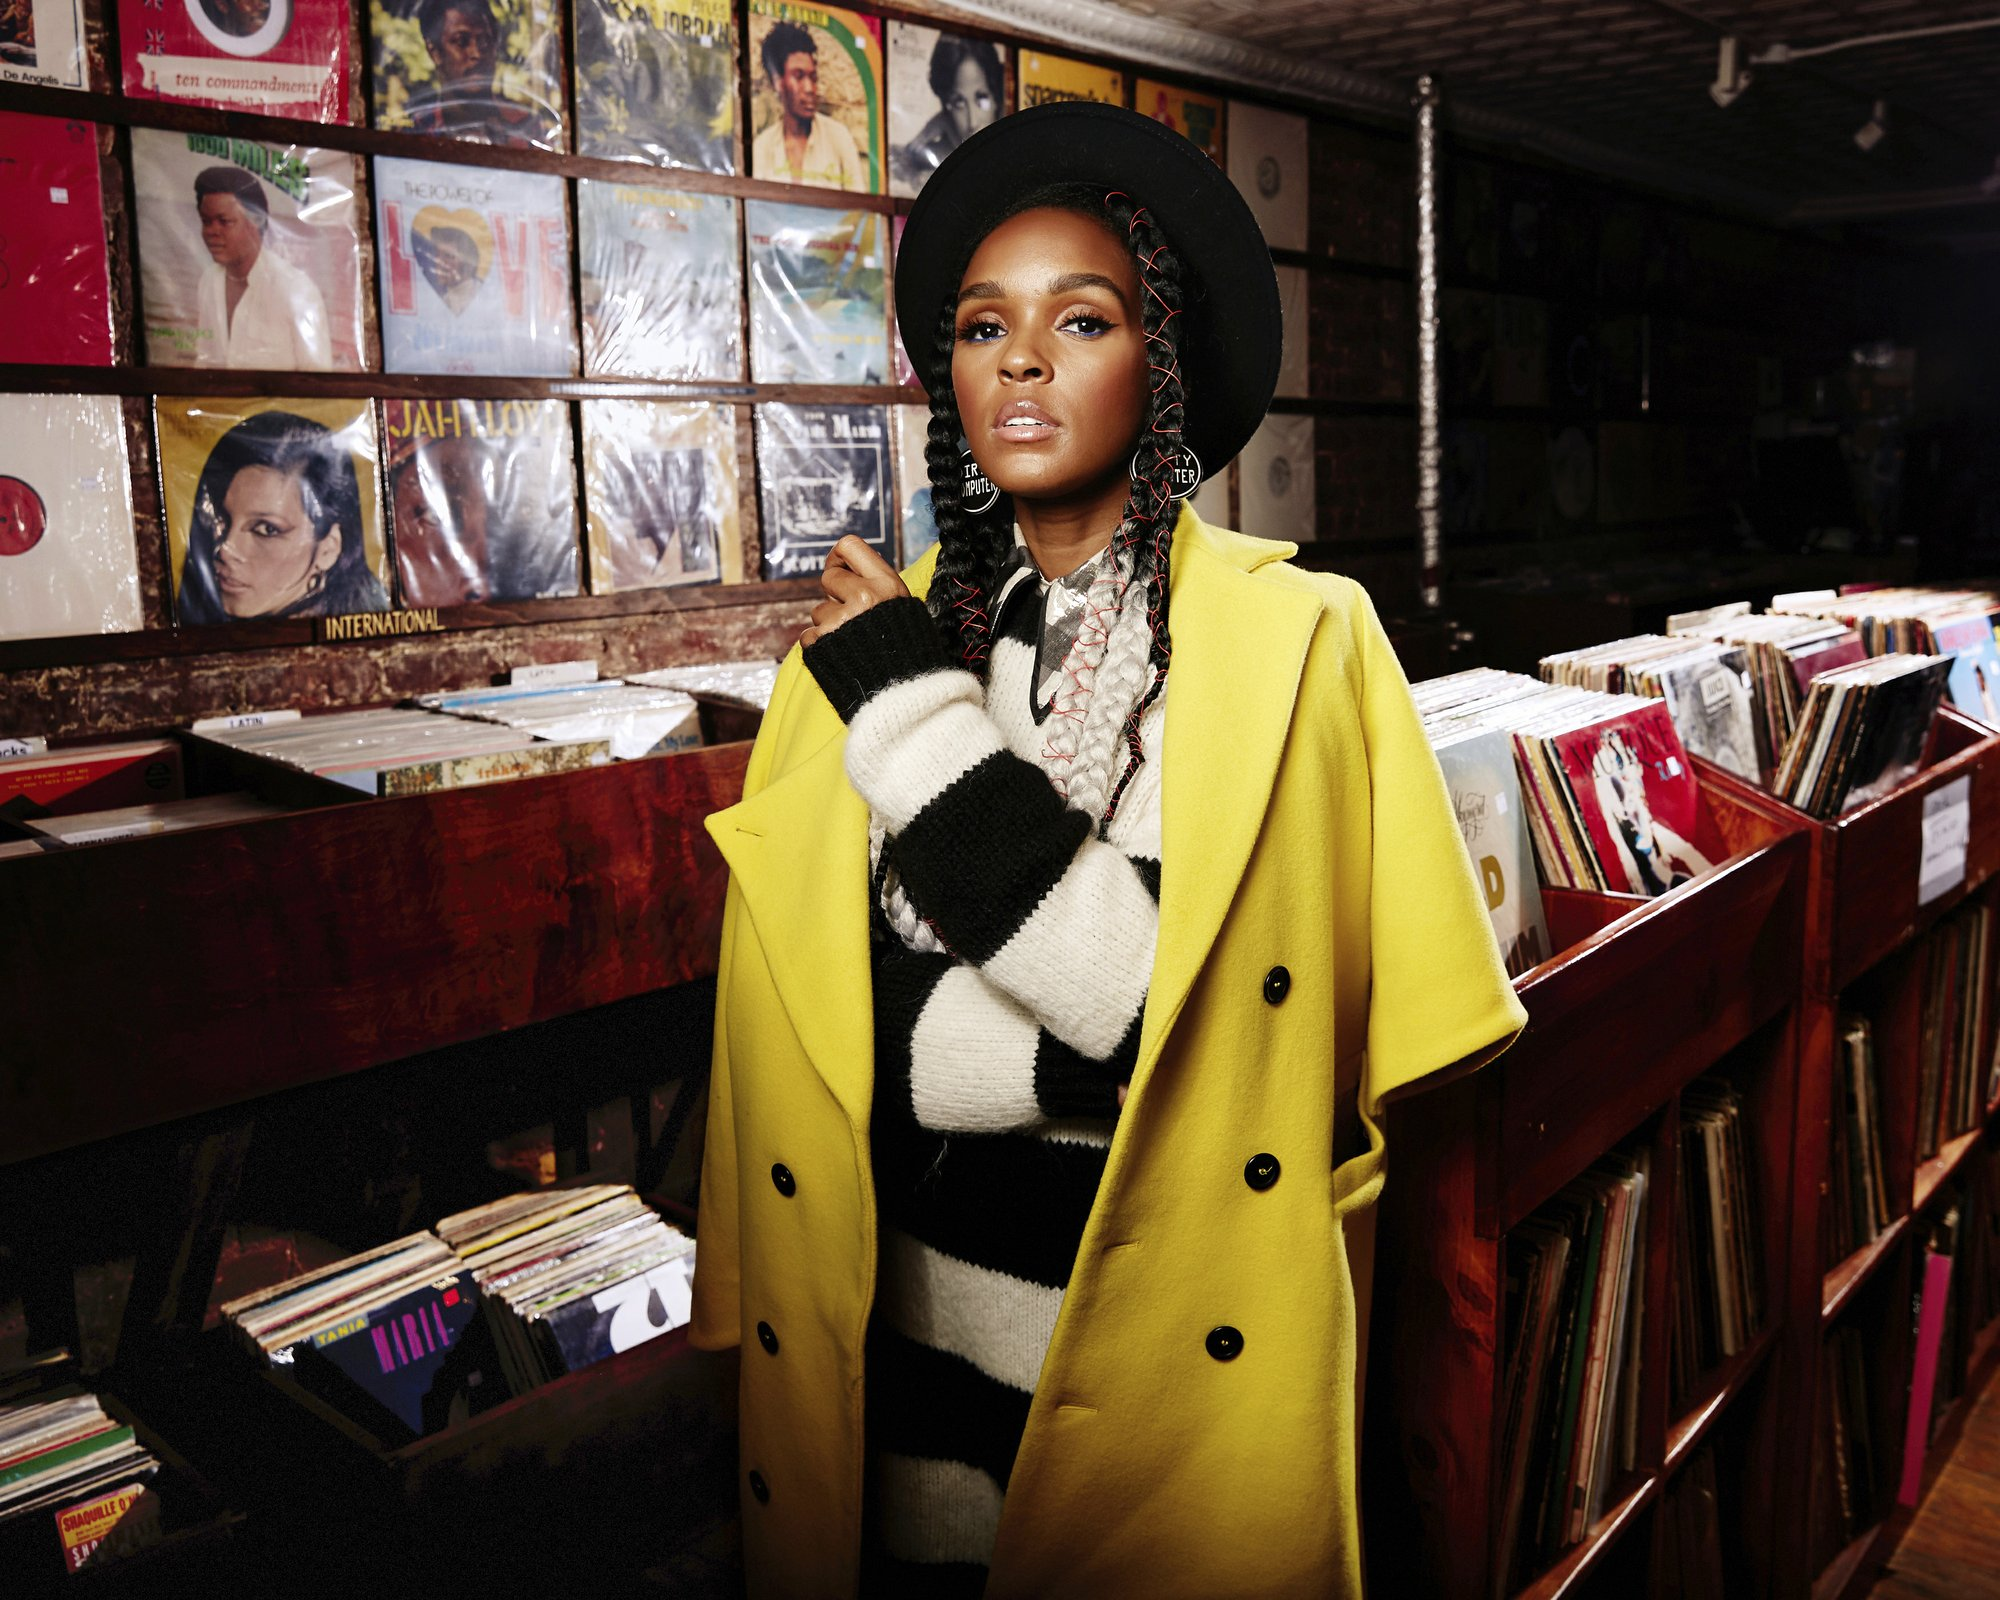 Janelle Monae on Lauryn Hill, vinyl and 'Dirty Computer'